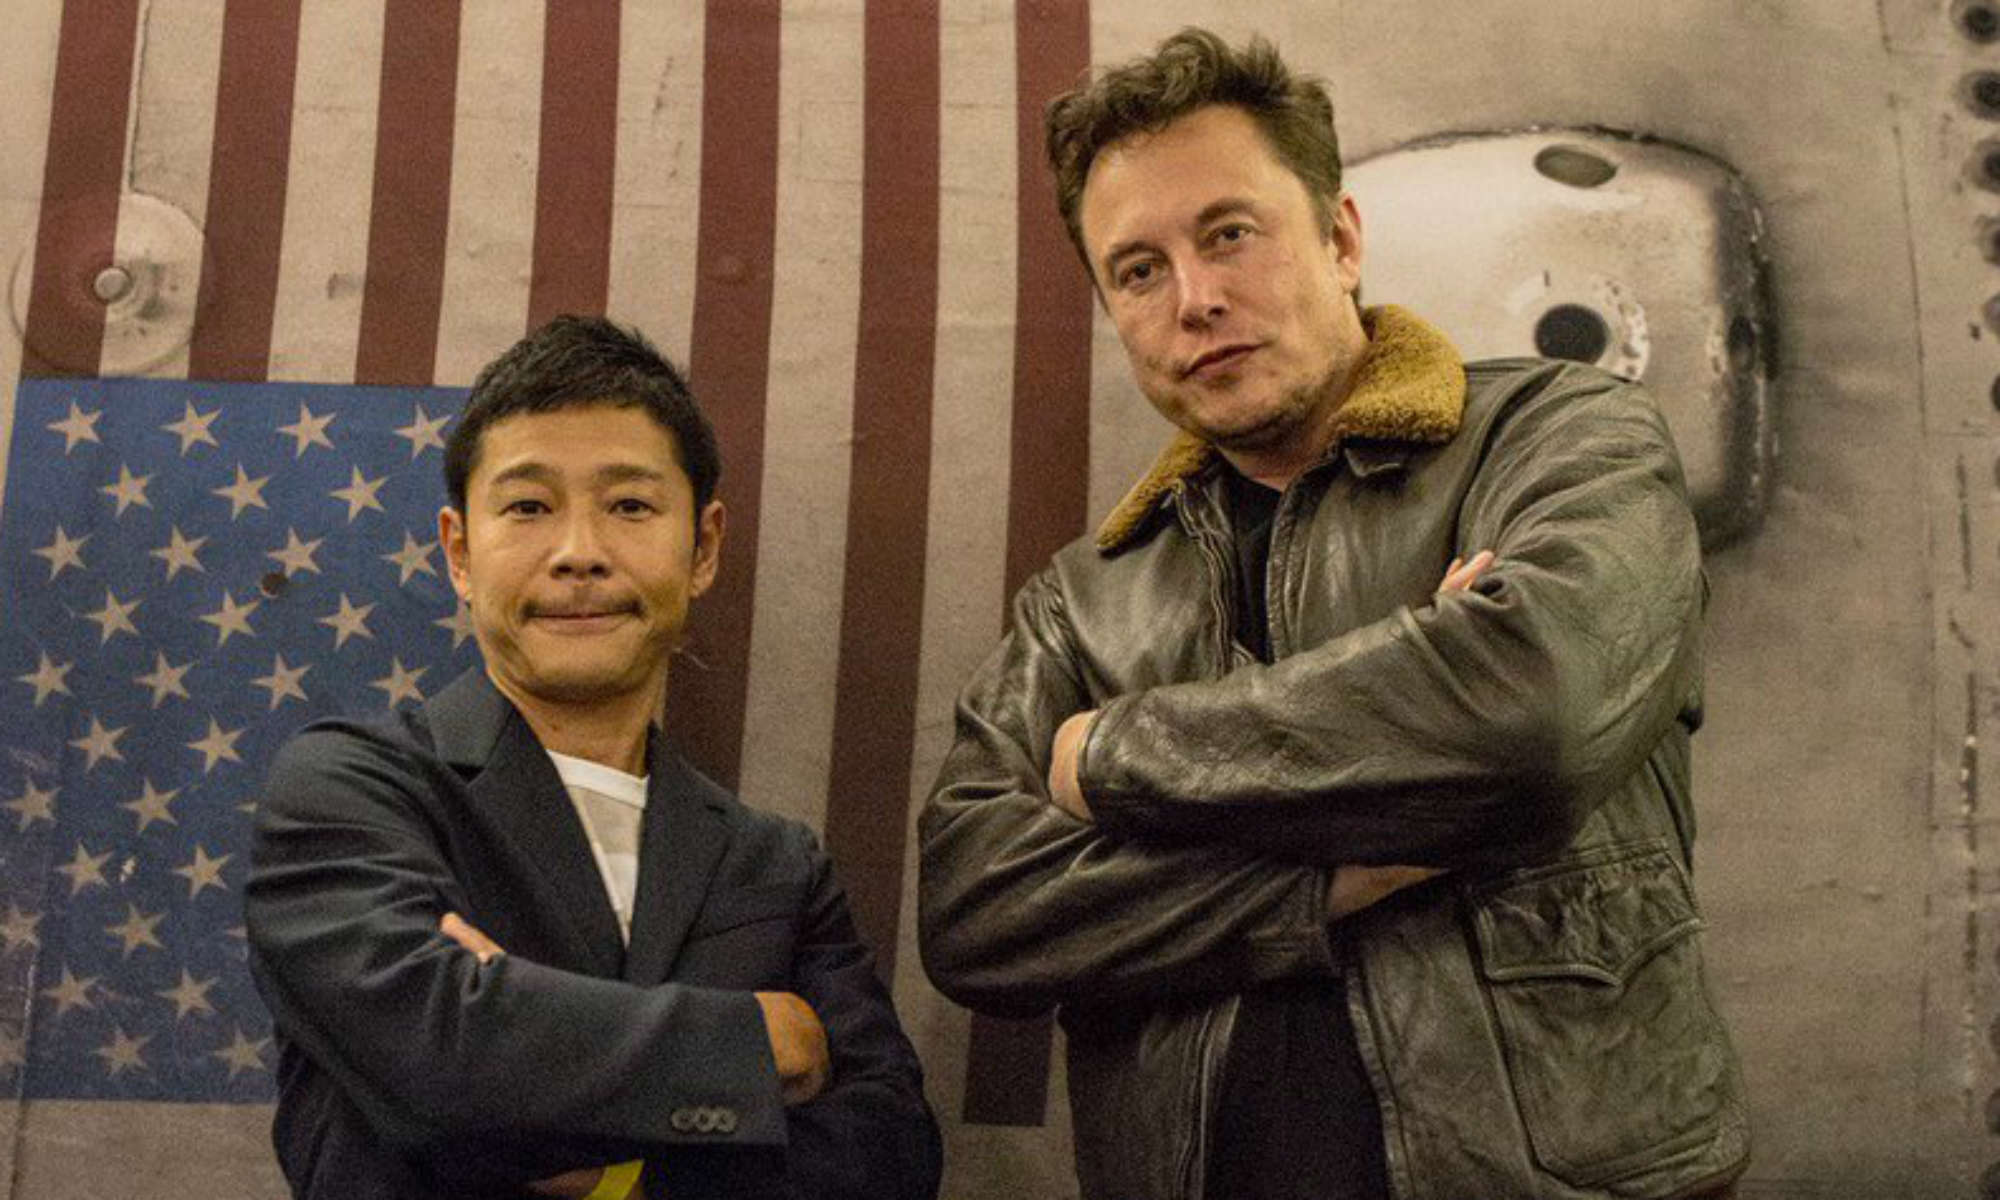 First private flight to moon will have billionaire and artists as crew